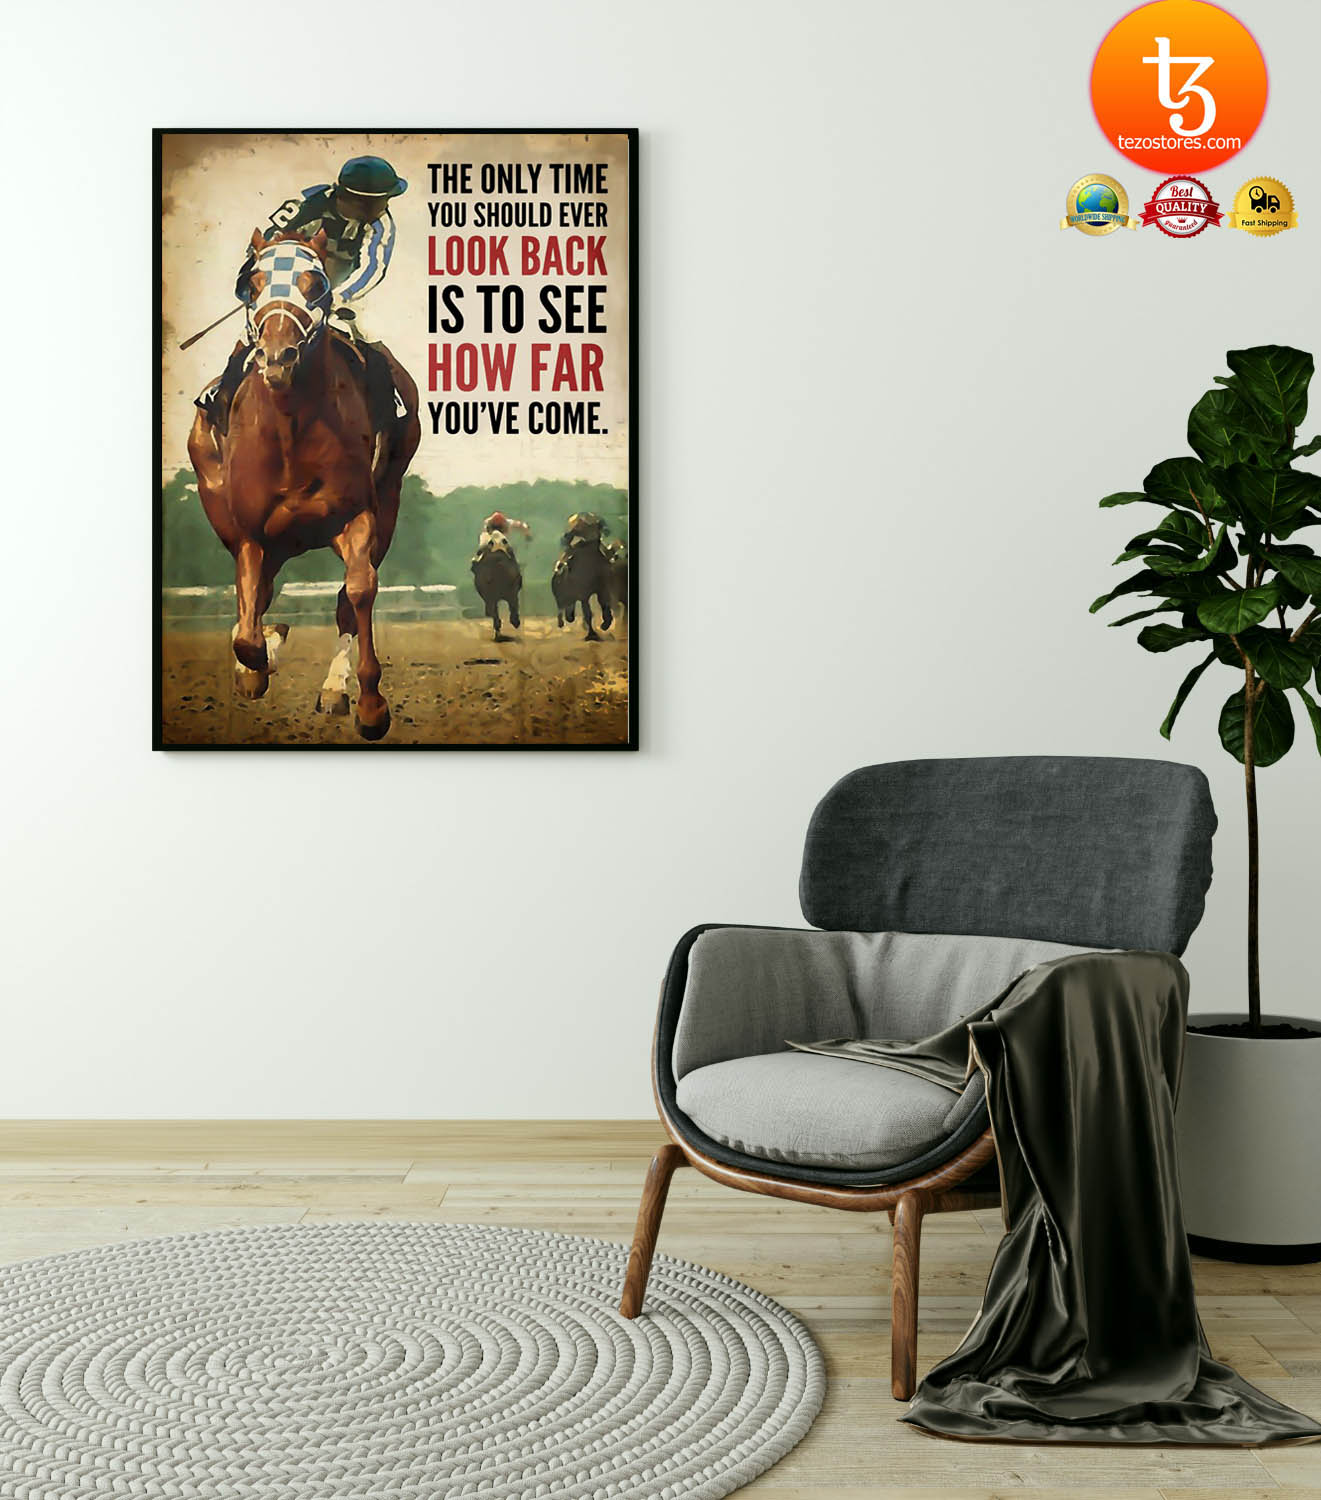 Racing horse The only time you should ever look back is to see how far you've come poster 21